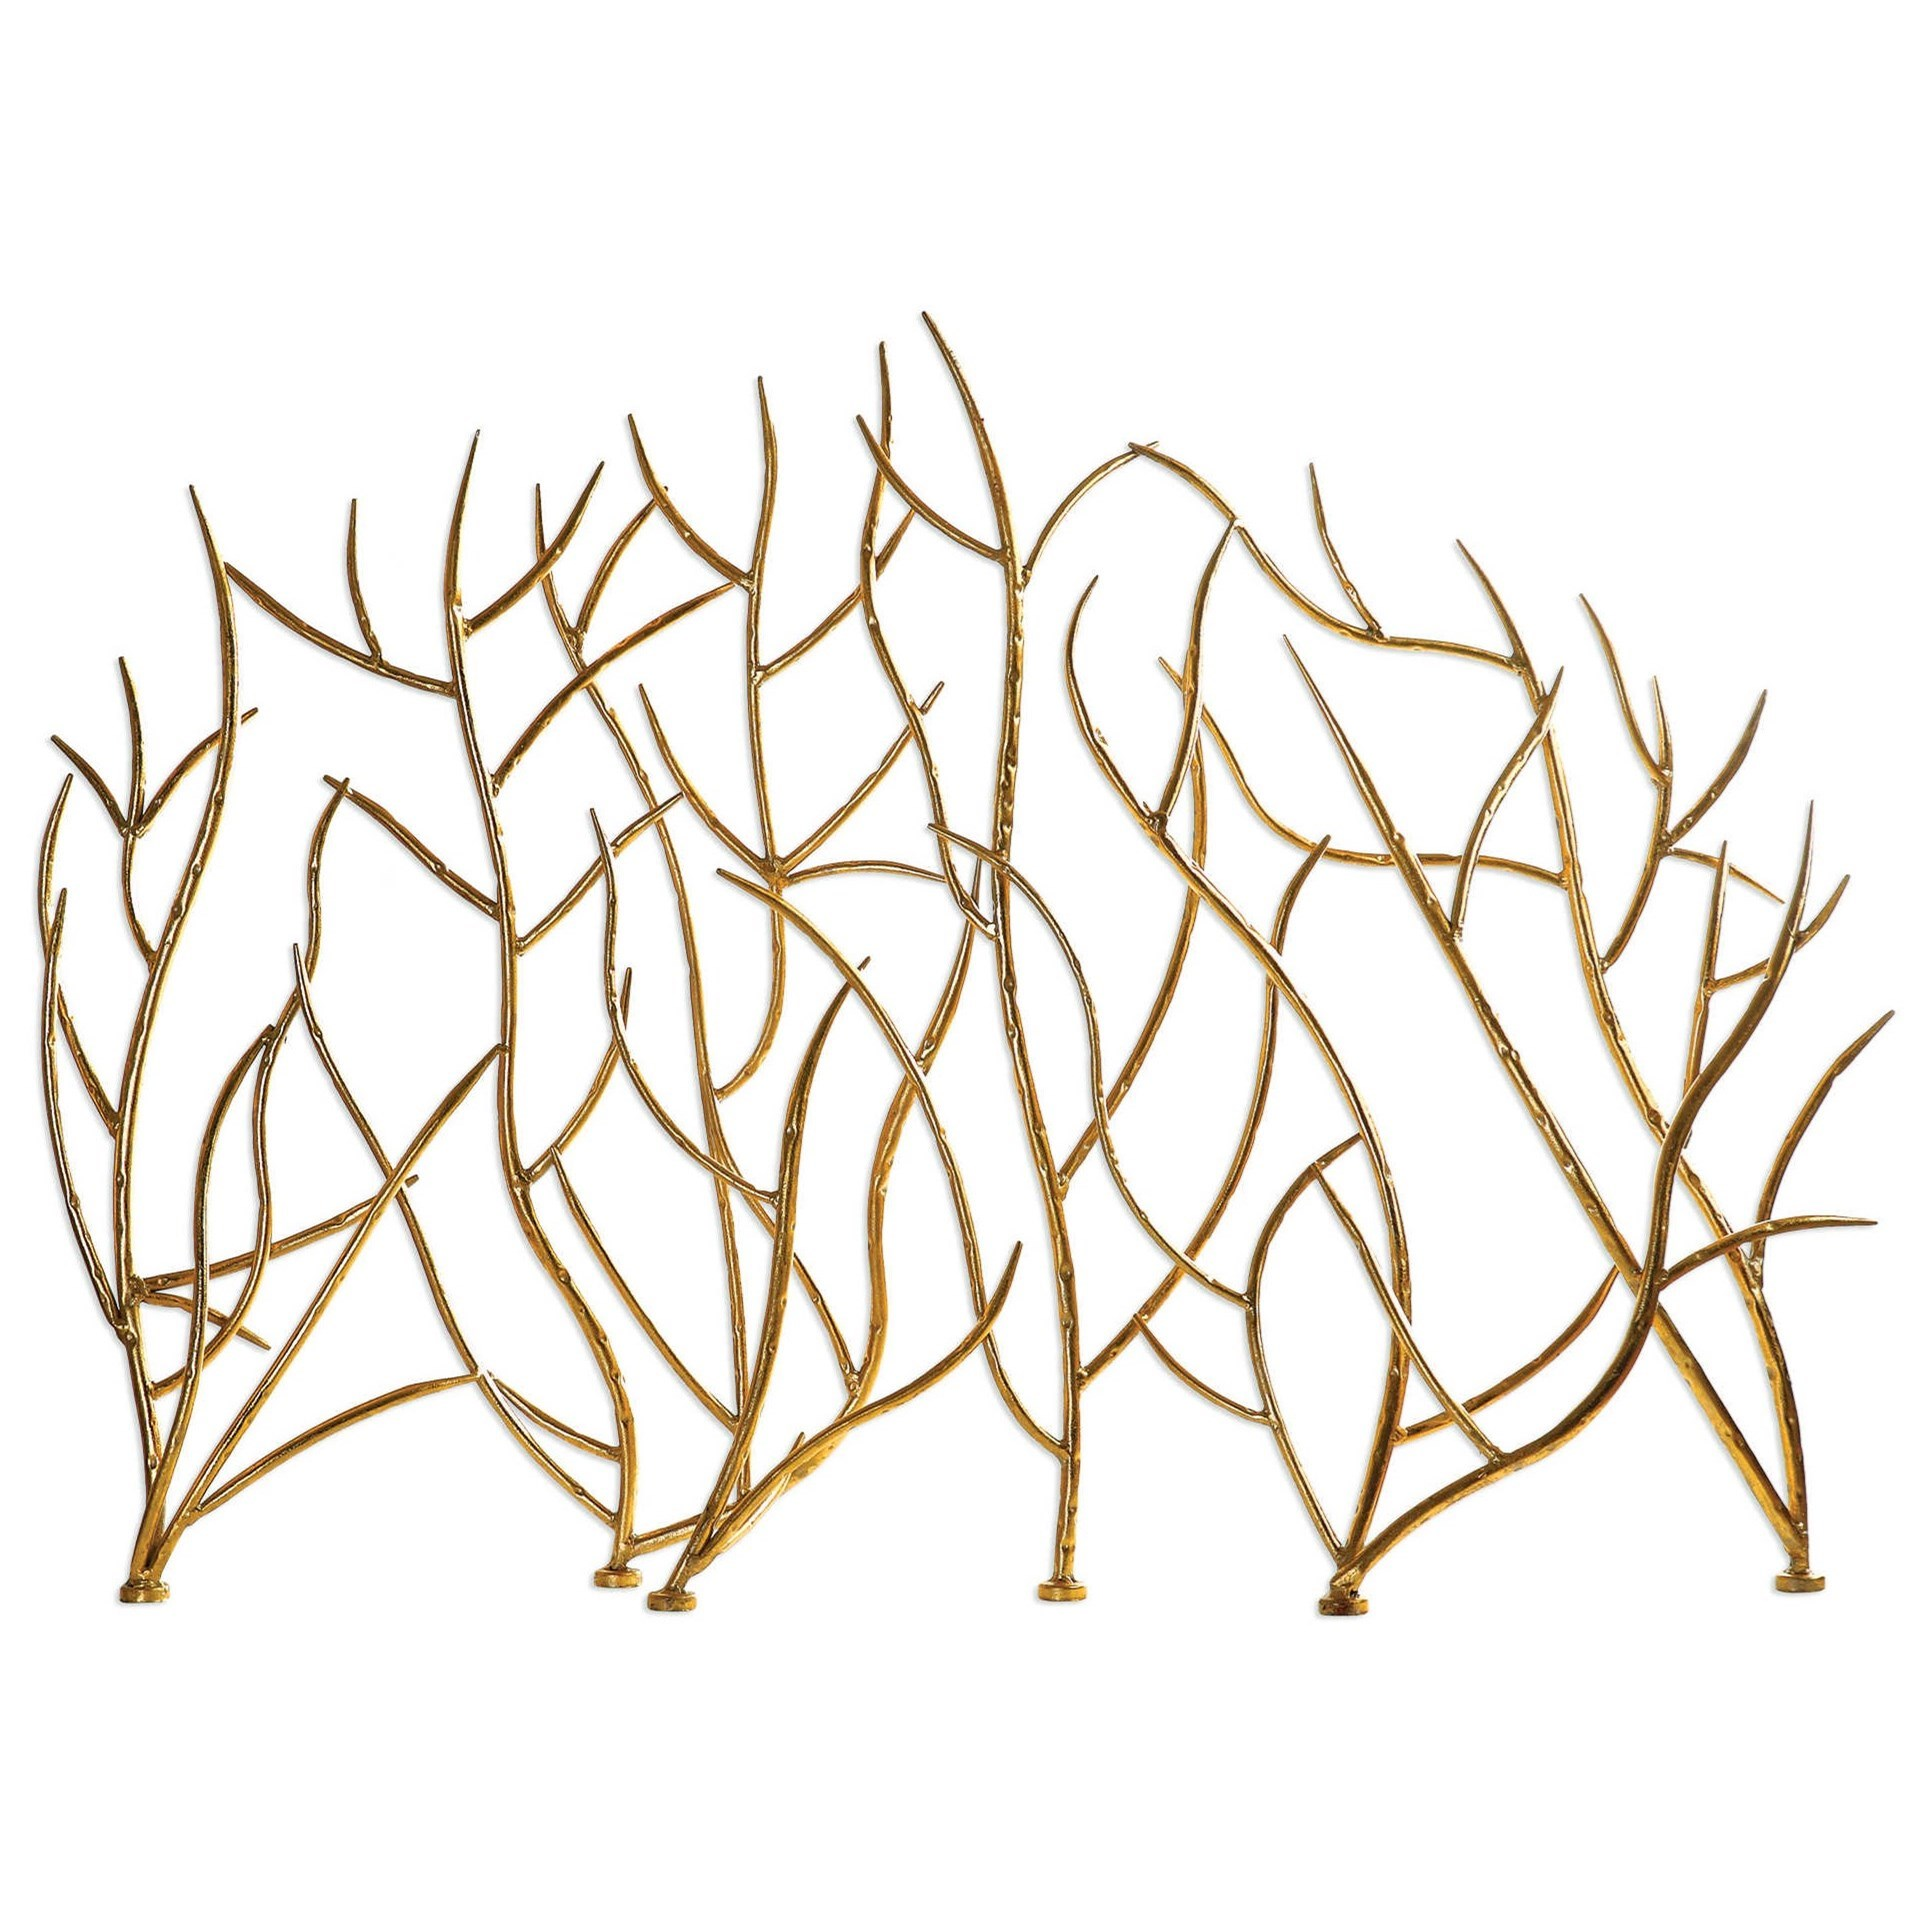 Accessories Gold Branches Decorative Fireplace Screen by Uttermost at Upper Room Home Furnishings